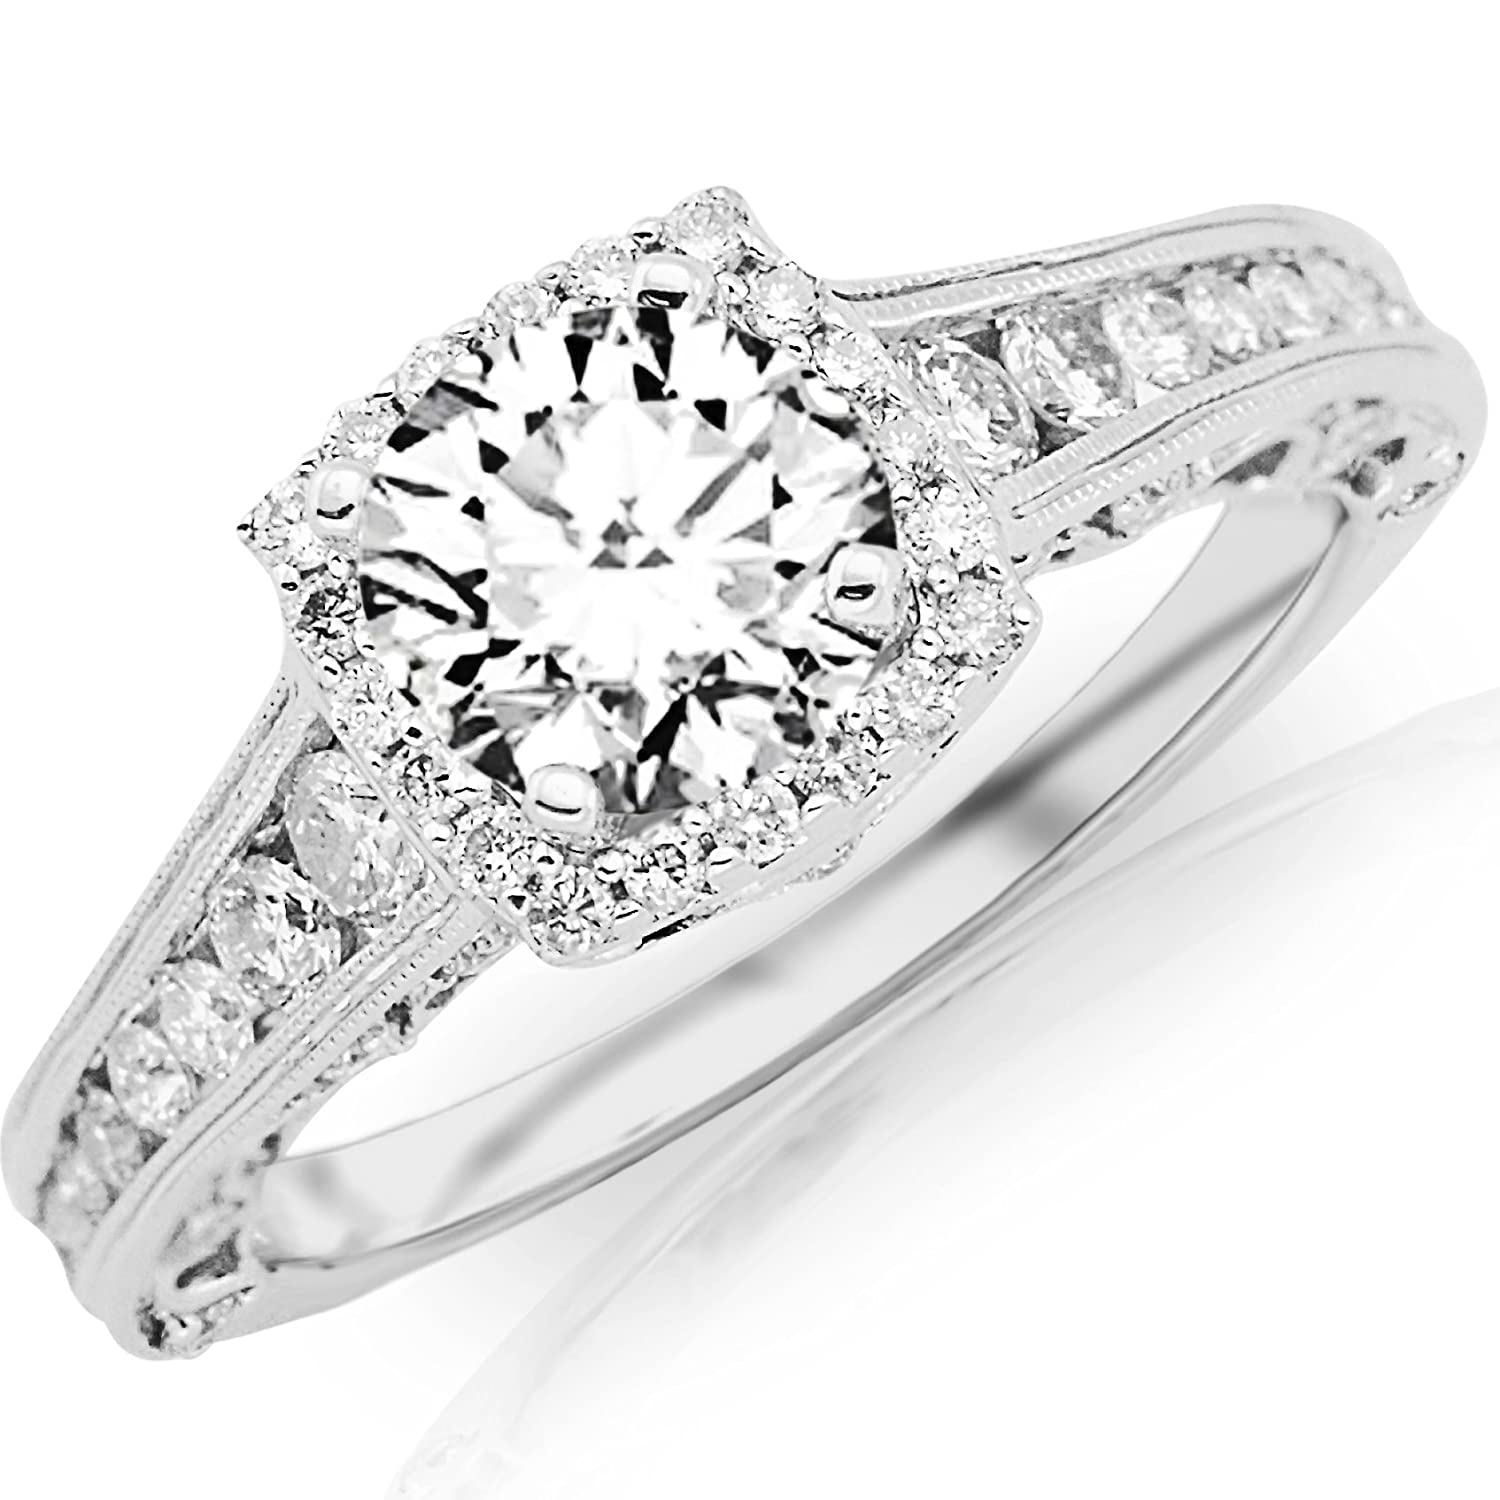 under white french shadow ring rings engagement by set jp diamond band ritani price wedding gold in